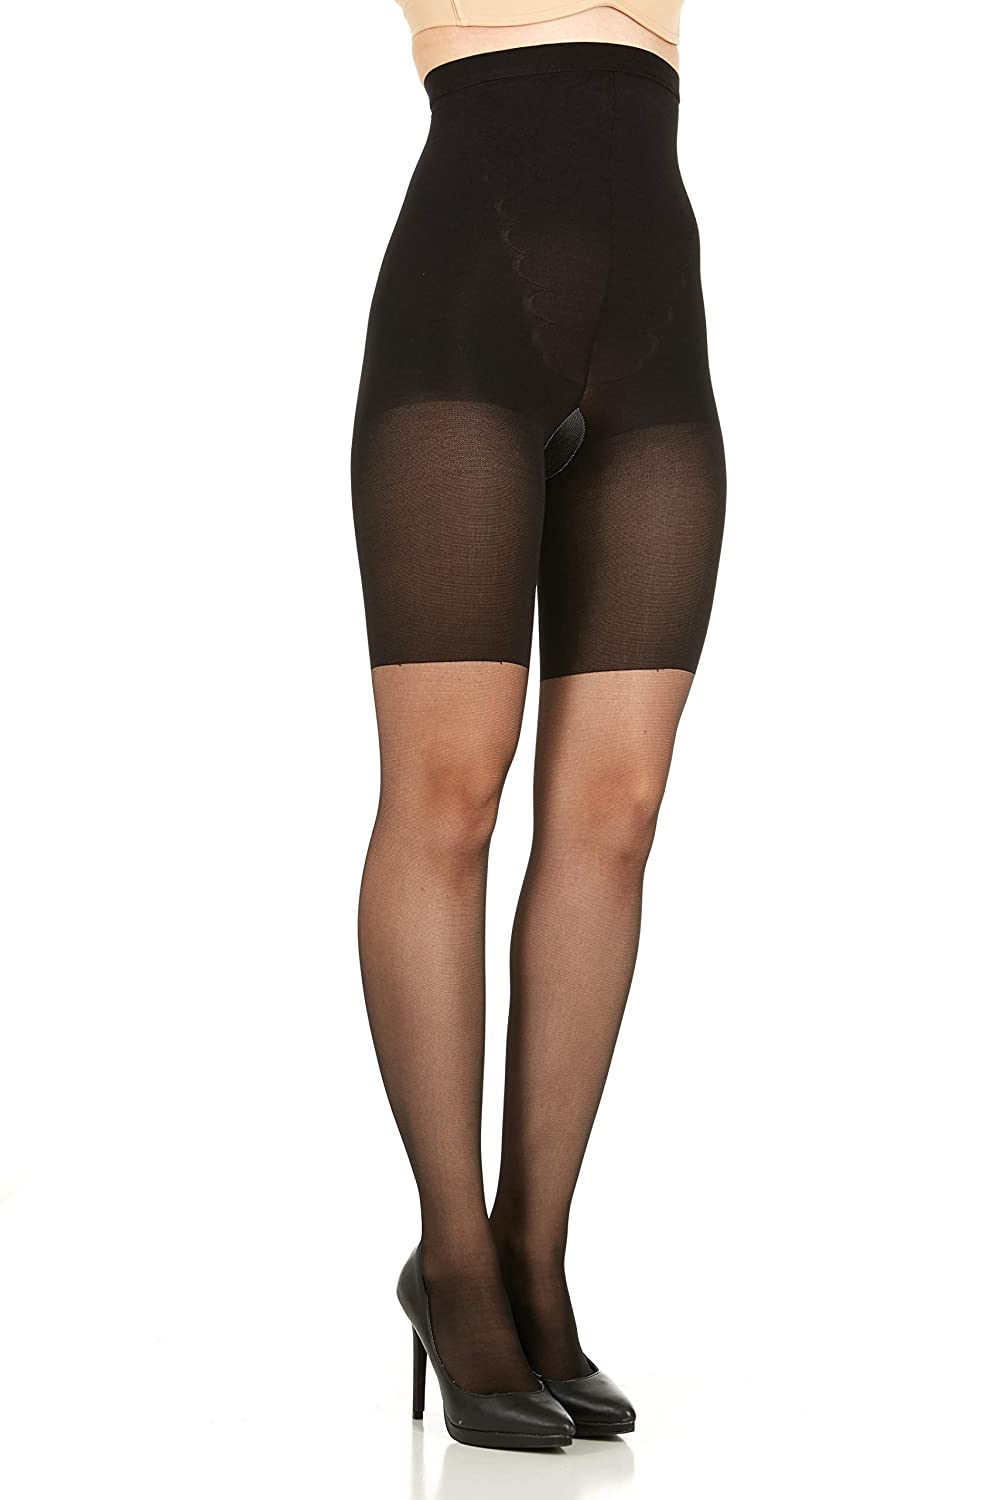 7007a5a43c40b ASSETS Red Hot Label High Waist Shaping Pantyhose 1845 at Amazon Women s  Clothing store